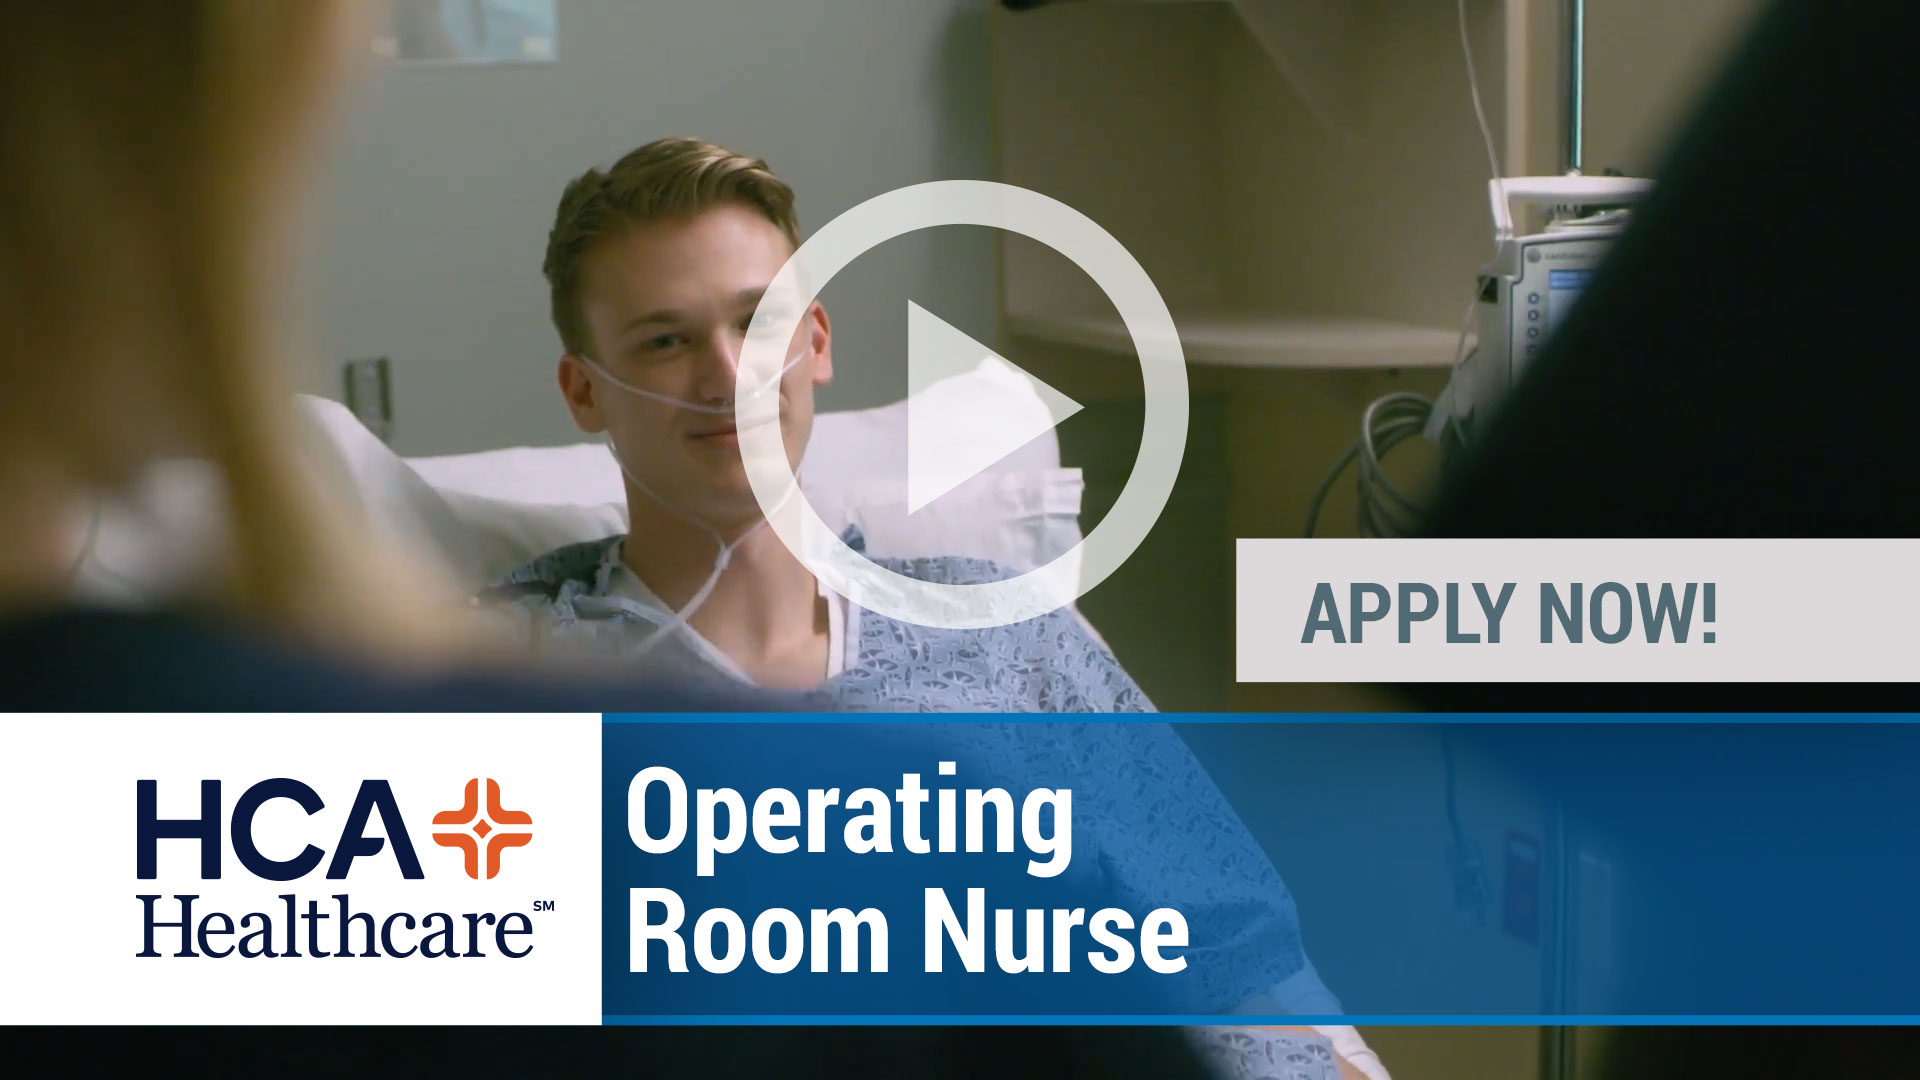 Watch our careers video for available job opening Operating Room Nurse in Cartersville, Georgia